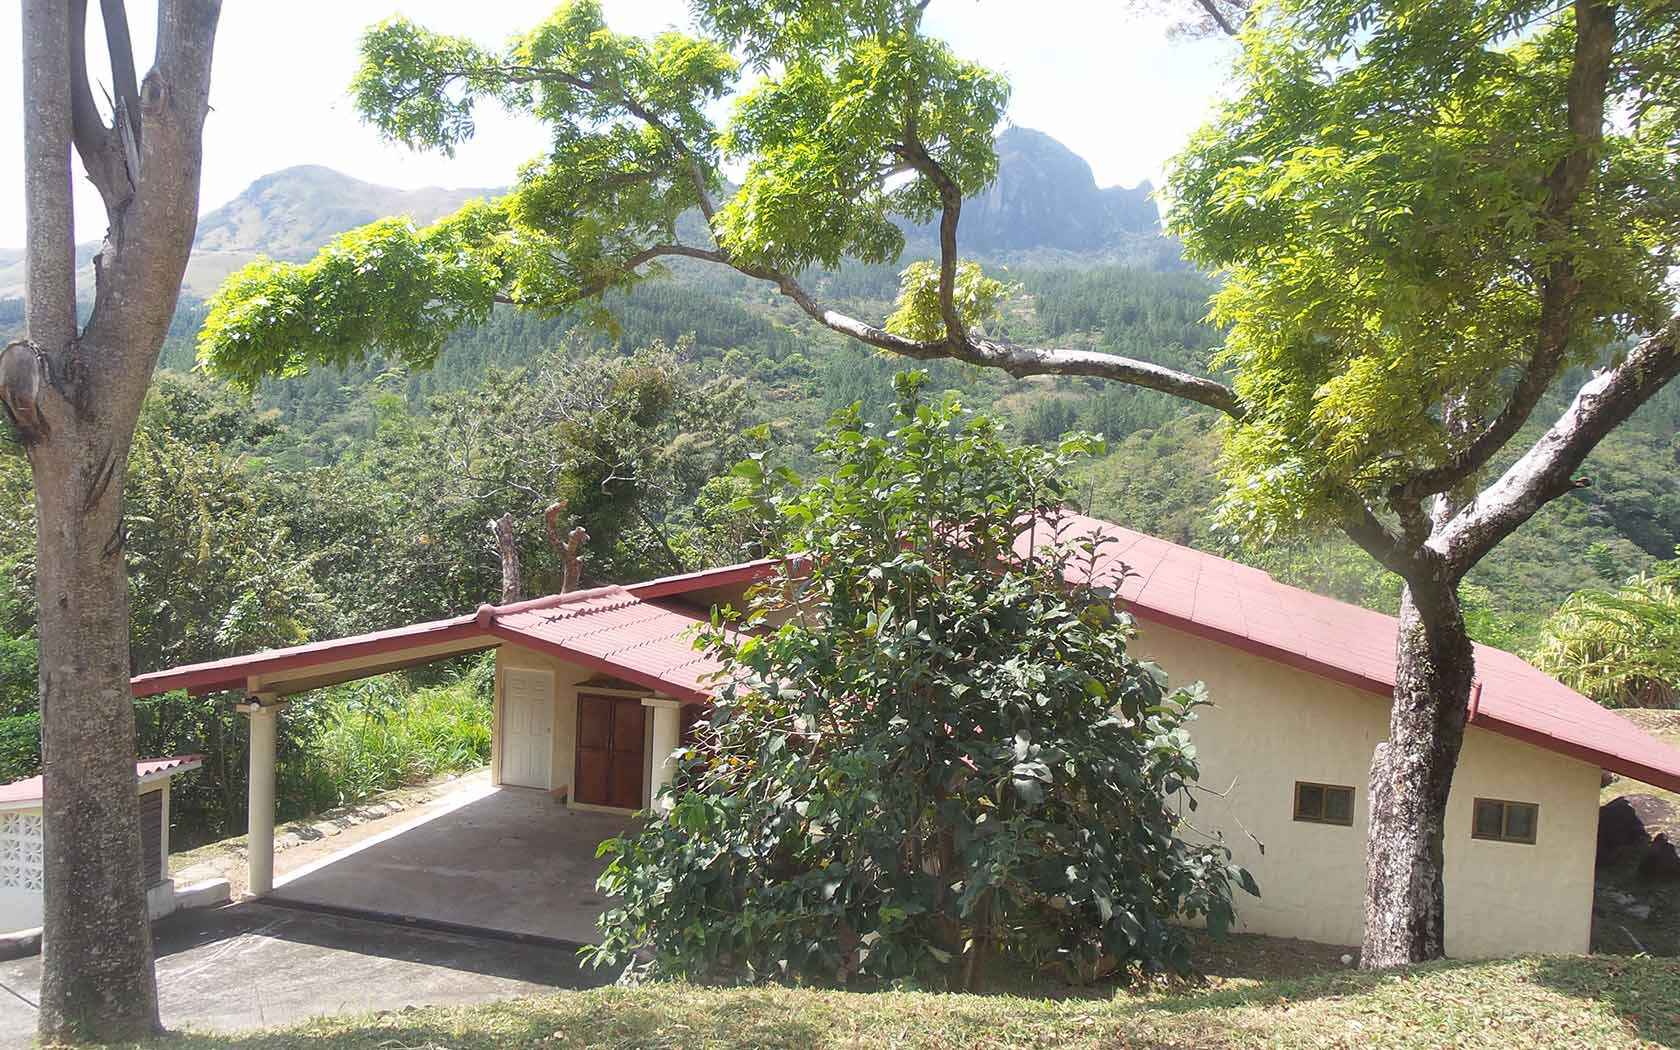 Panama-property-panamaequitymountain-home-near-river-altos-del-maria.jpg